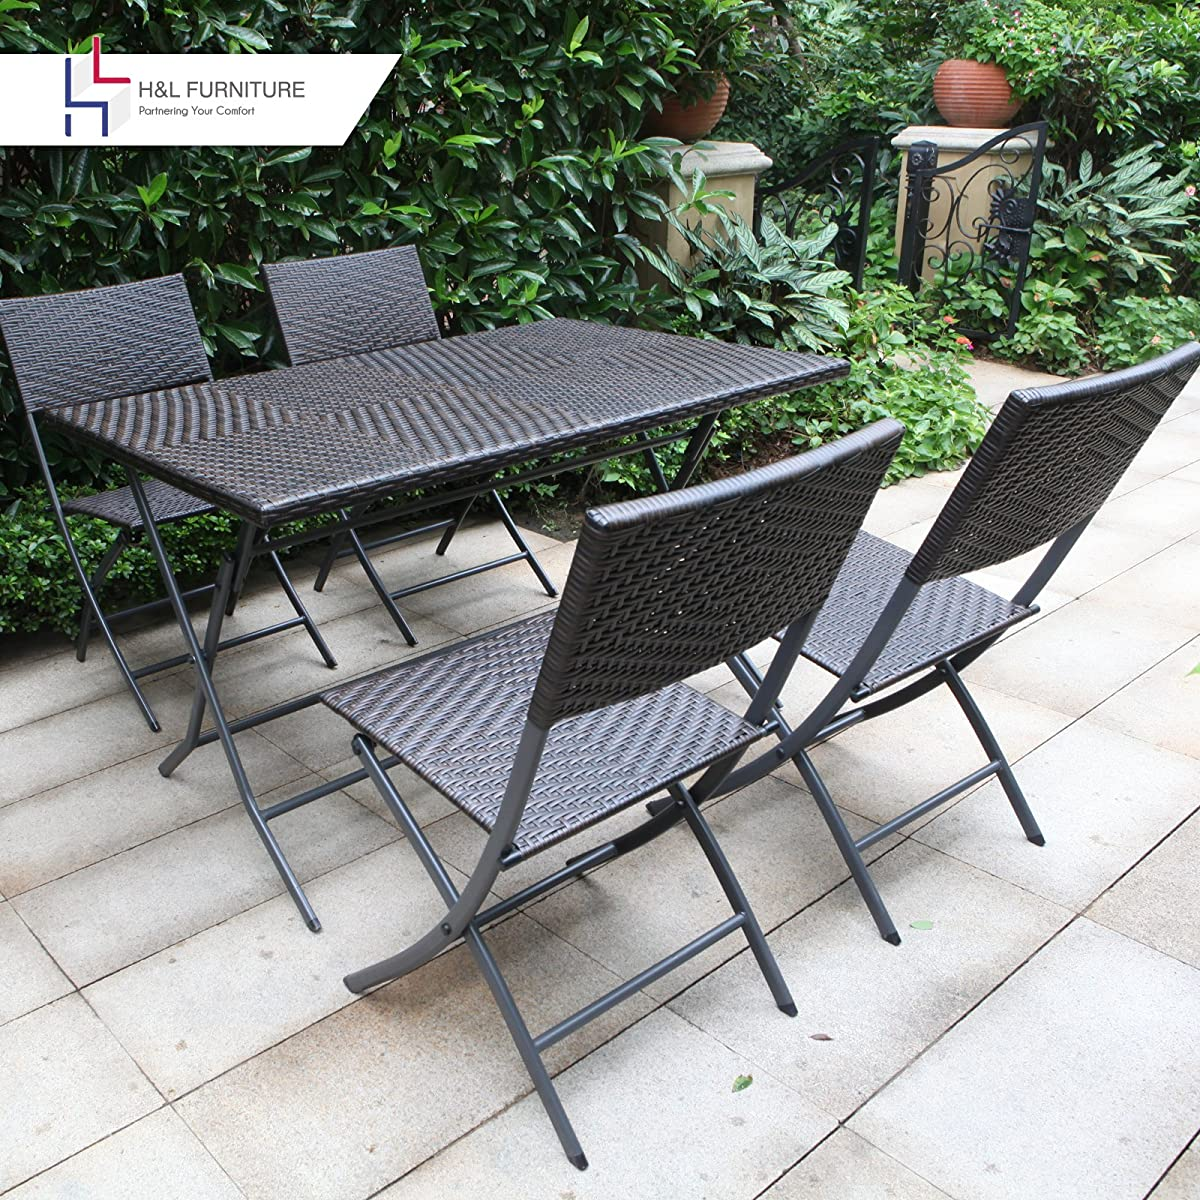 H&L Patio Resin Rattan Steel Folding Bistro Set, Parma Style, All Weather Resistant Resin Wicker, 5 PCS Set of Foldable Table and Chairs, Color Espresso Brown, 1 Year Warranty